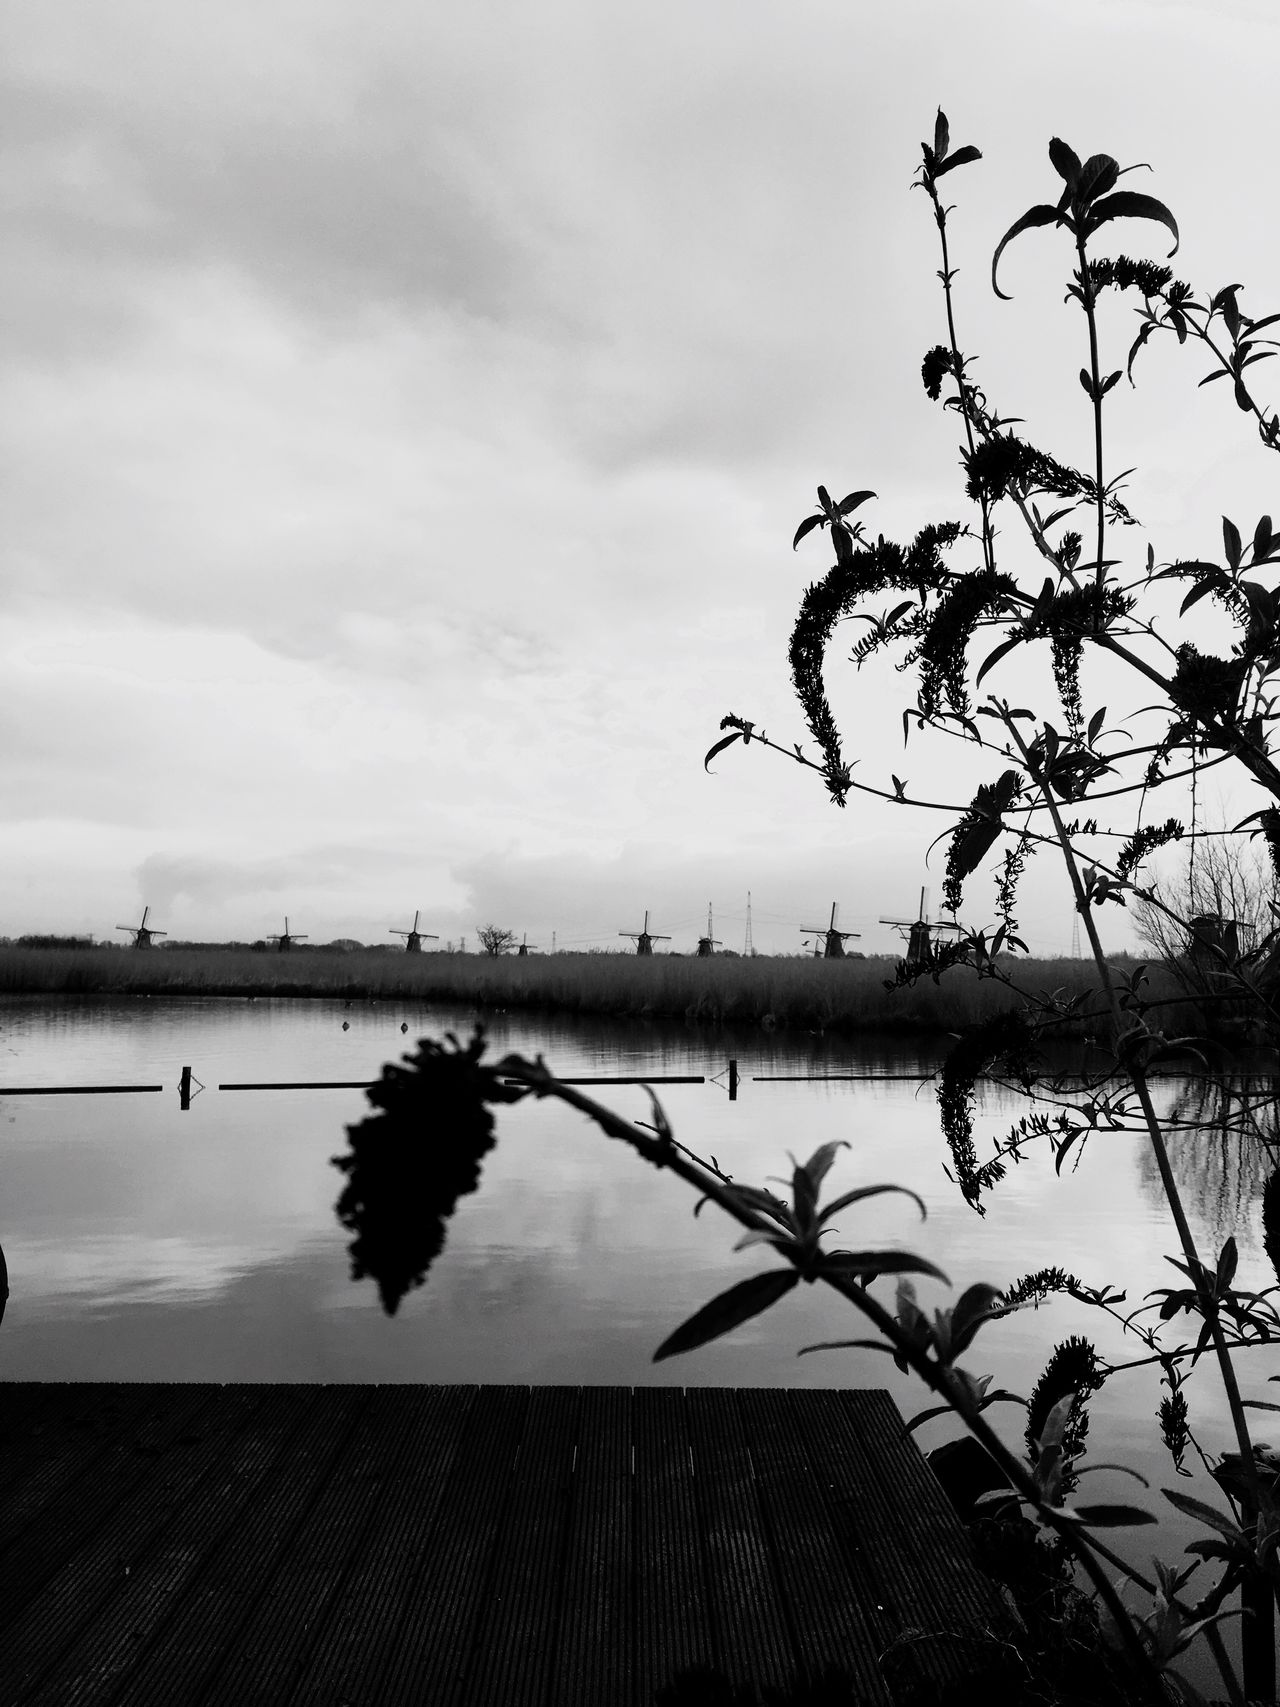 Sky Water Tree No People Nature Cloud - Sky Lake Tranquility Outdoors Growth Beauty In Nature Day